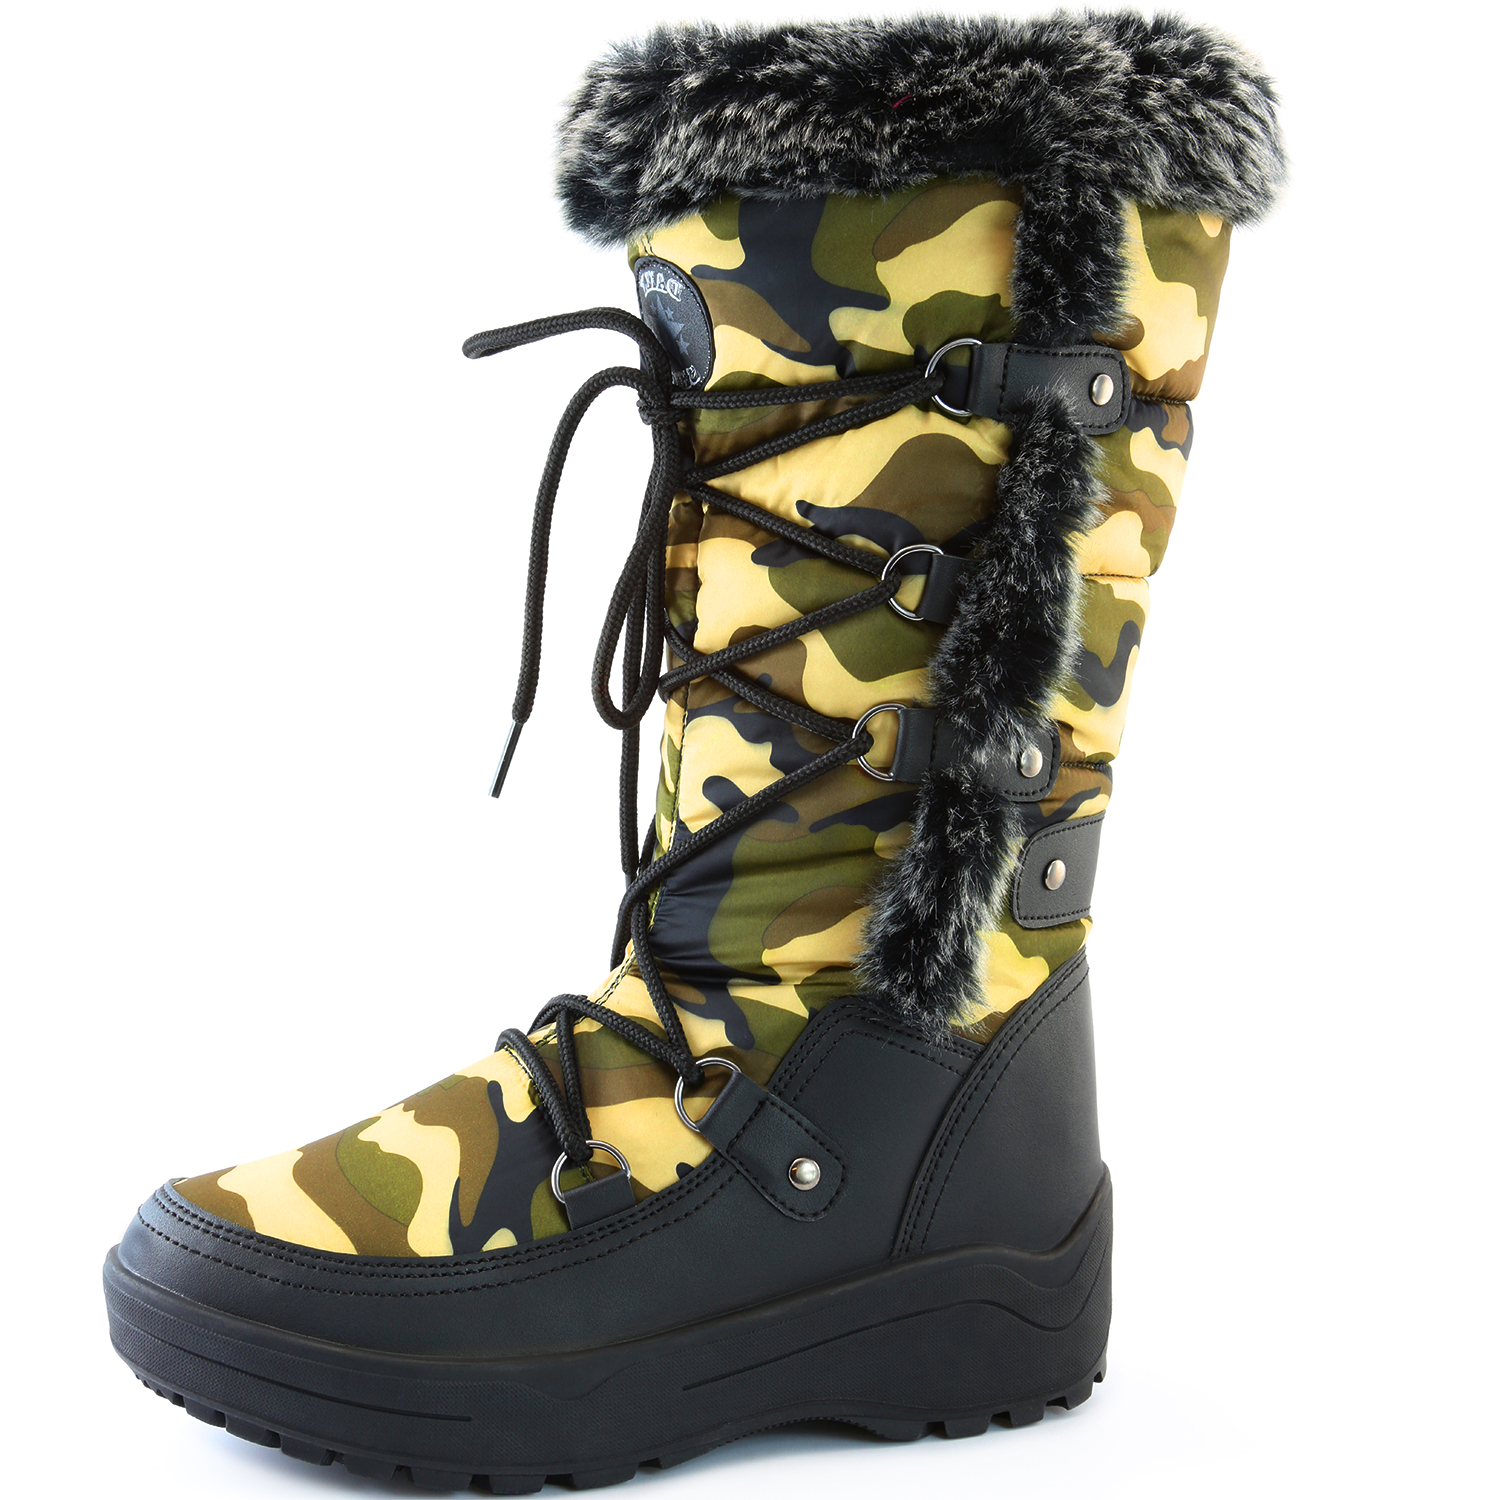 DailyShoes Woman's Knee High Lace Up Warm Fur Water Resistant Eskimo Snow Boots, Black, 9 B(M) US by